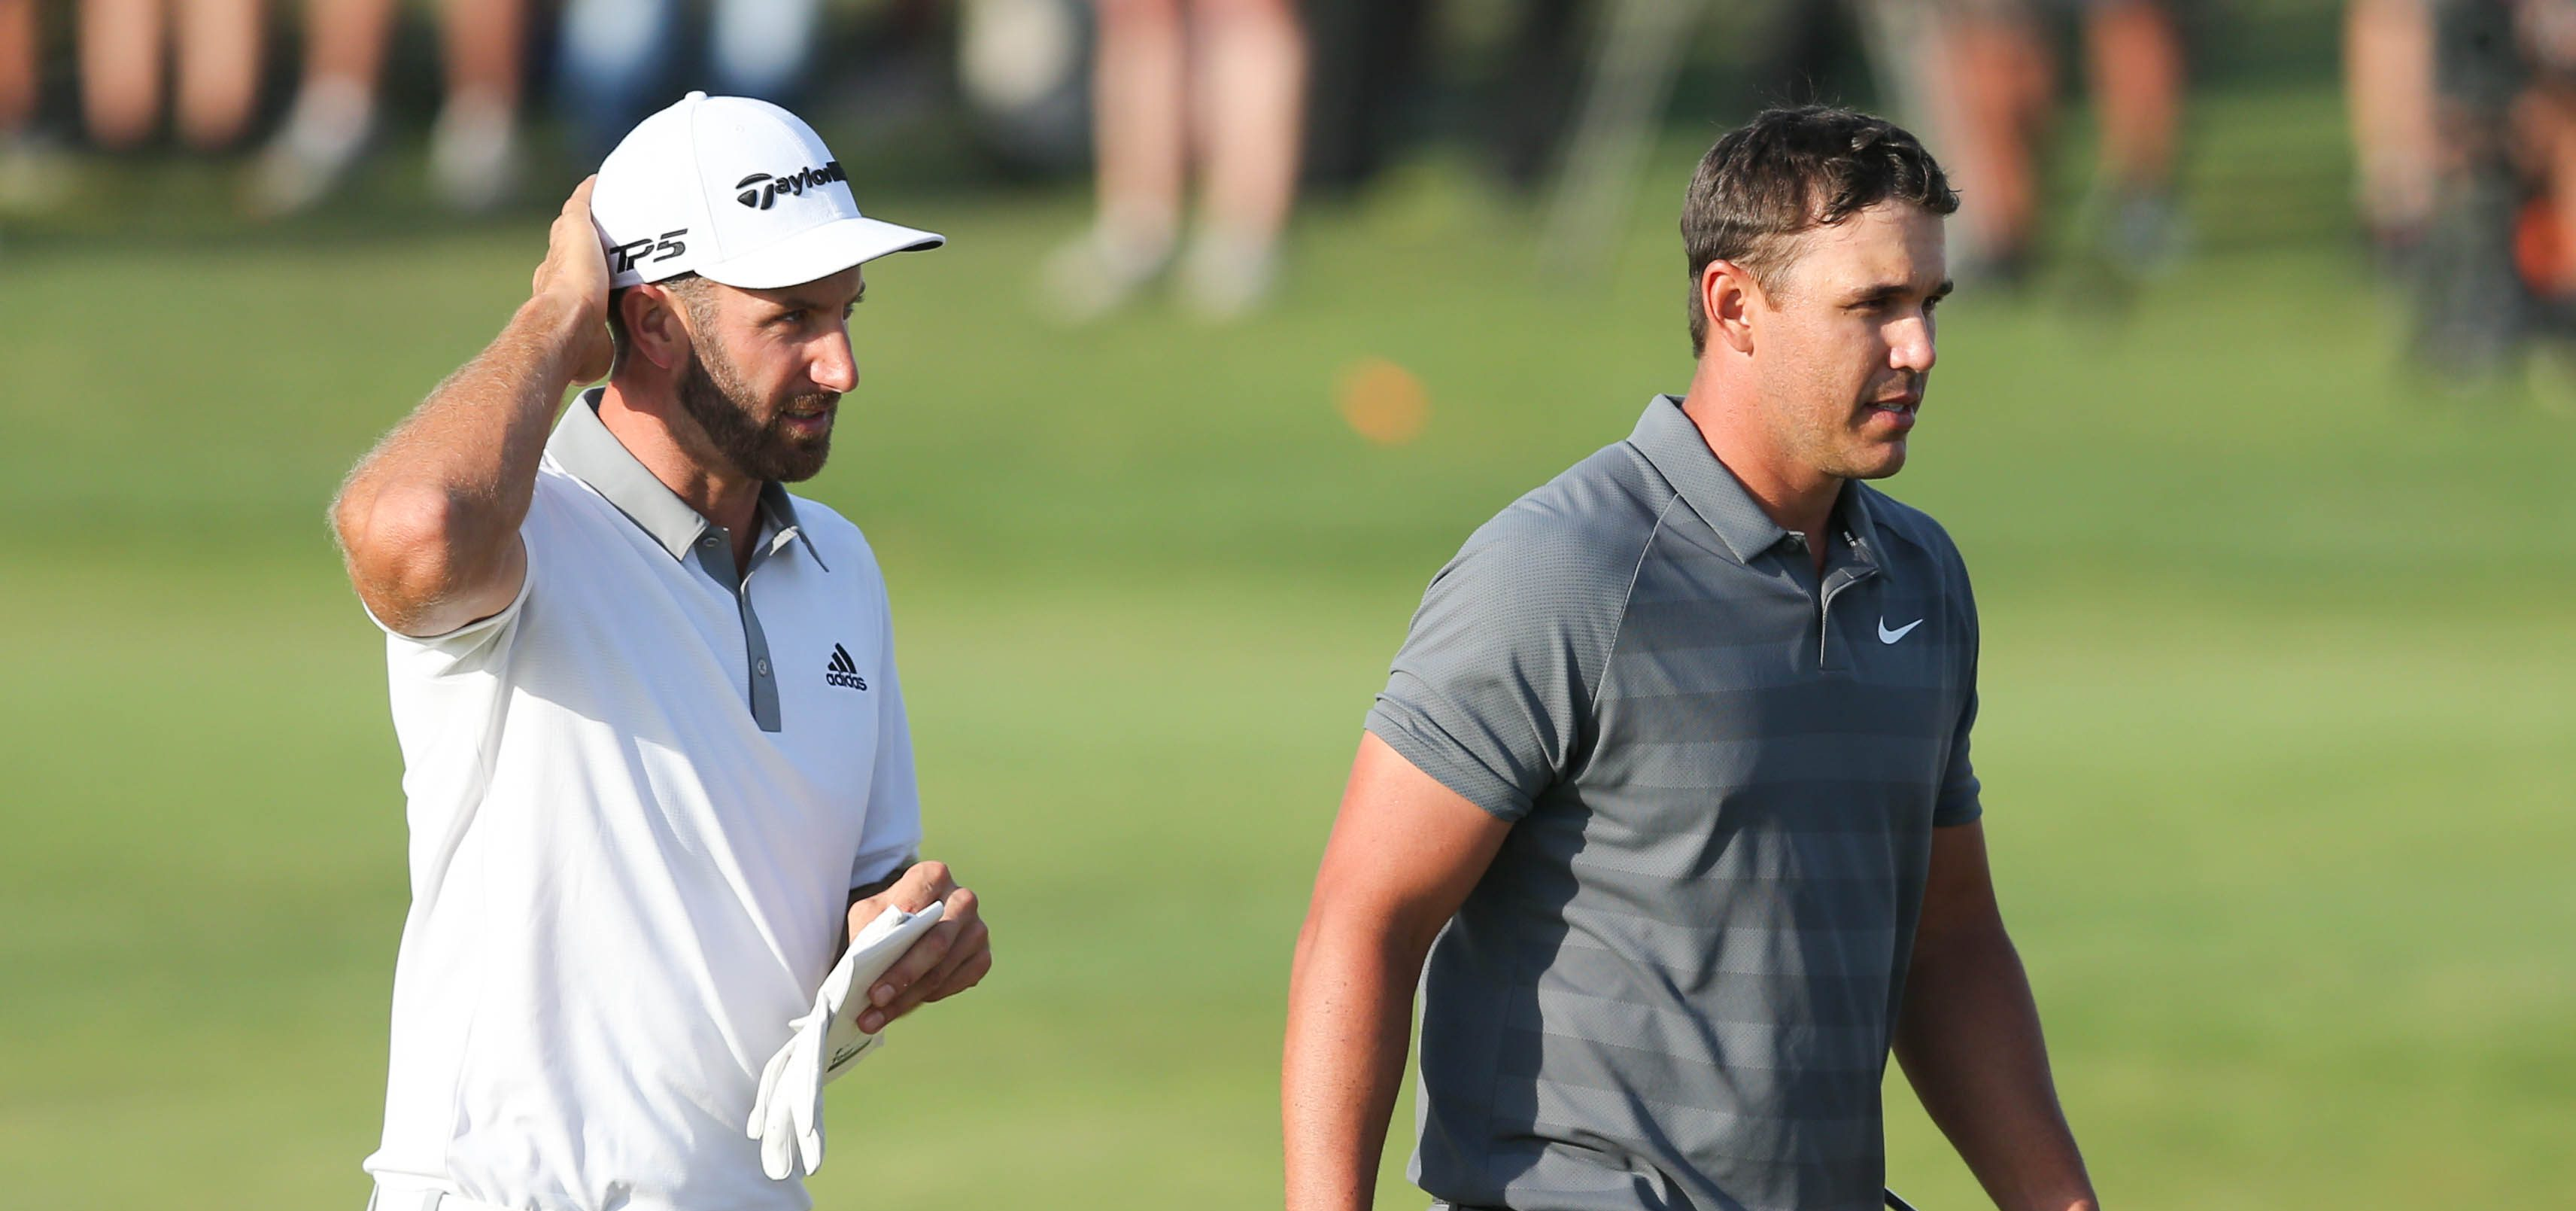 Jun 17, 2018; Southampton, NY, USA; Dustin Johnson and Brooks Koepka walk off the eighteenth green after completing the final round of the U.S. Open golf tournament at Shinnecock Hills GC - Shinnecock Hills Golf C. Mandatory Credit: Brad Penner-USA TODAY Sports